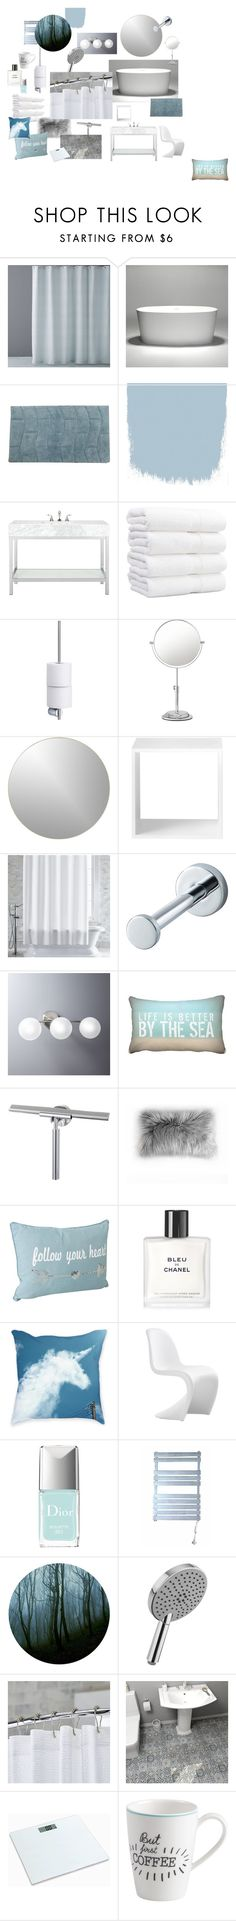 """""""Moody Blue Bathroom"""" by llaskujarvi on Polyvore featuring interior, interiors, interior design, home, home decor, interior decorating, Hudson Park, Home Decorators Collection, blomus and Universal Lighting and Decor"""